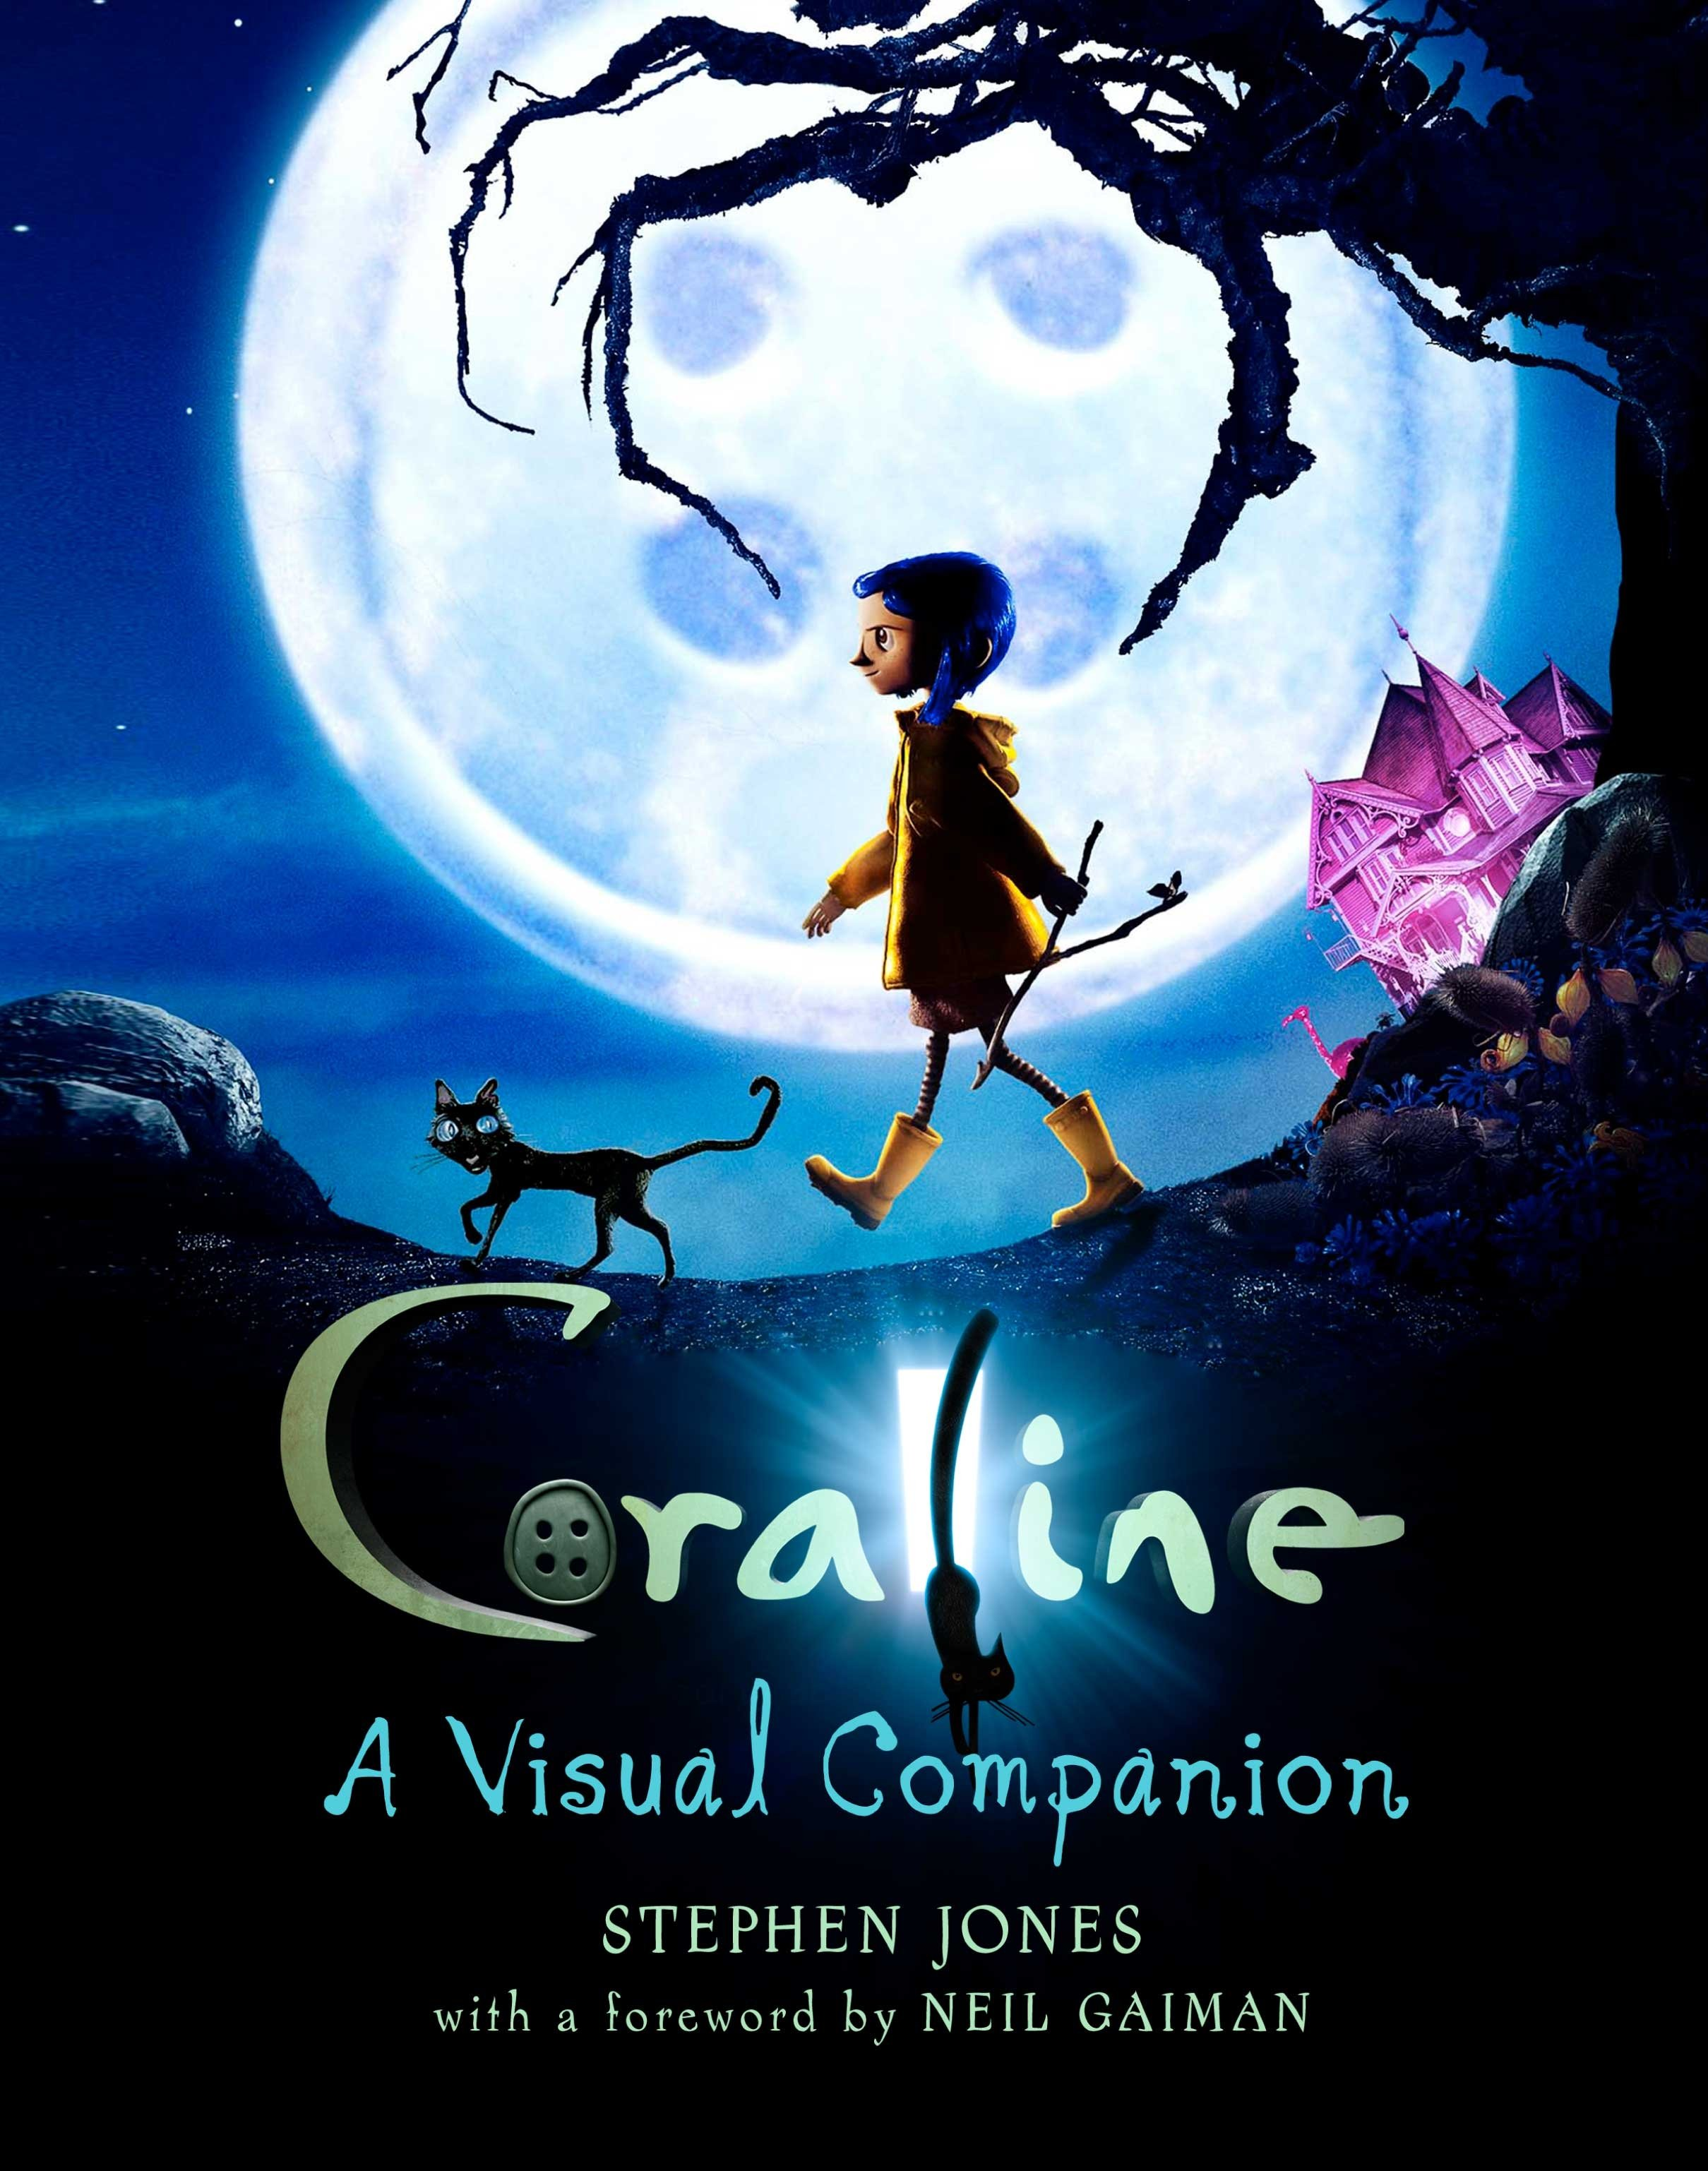 Stephen Jones Coraline A Visual Companion 2009